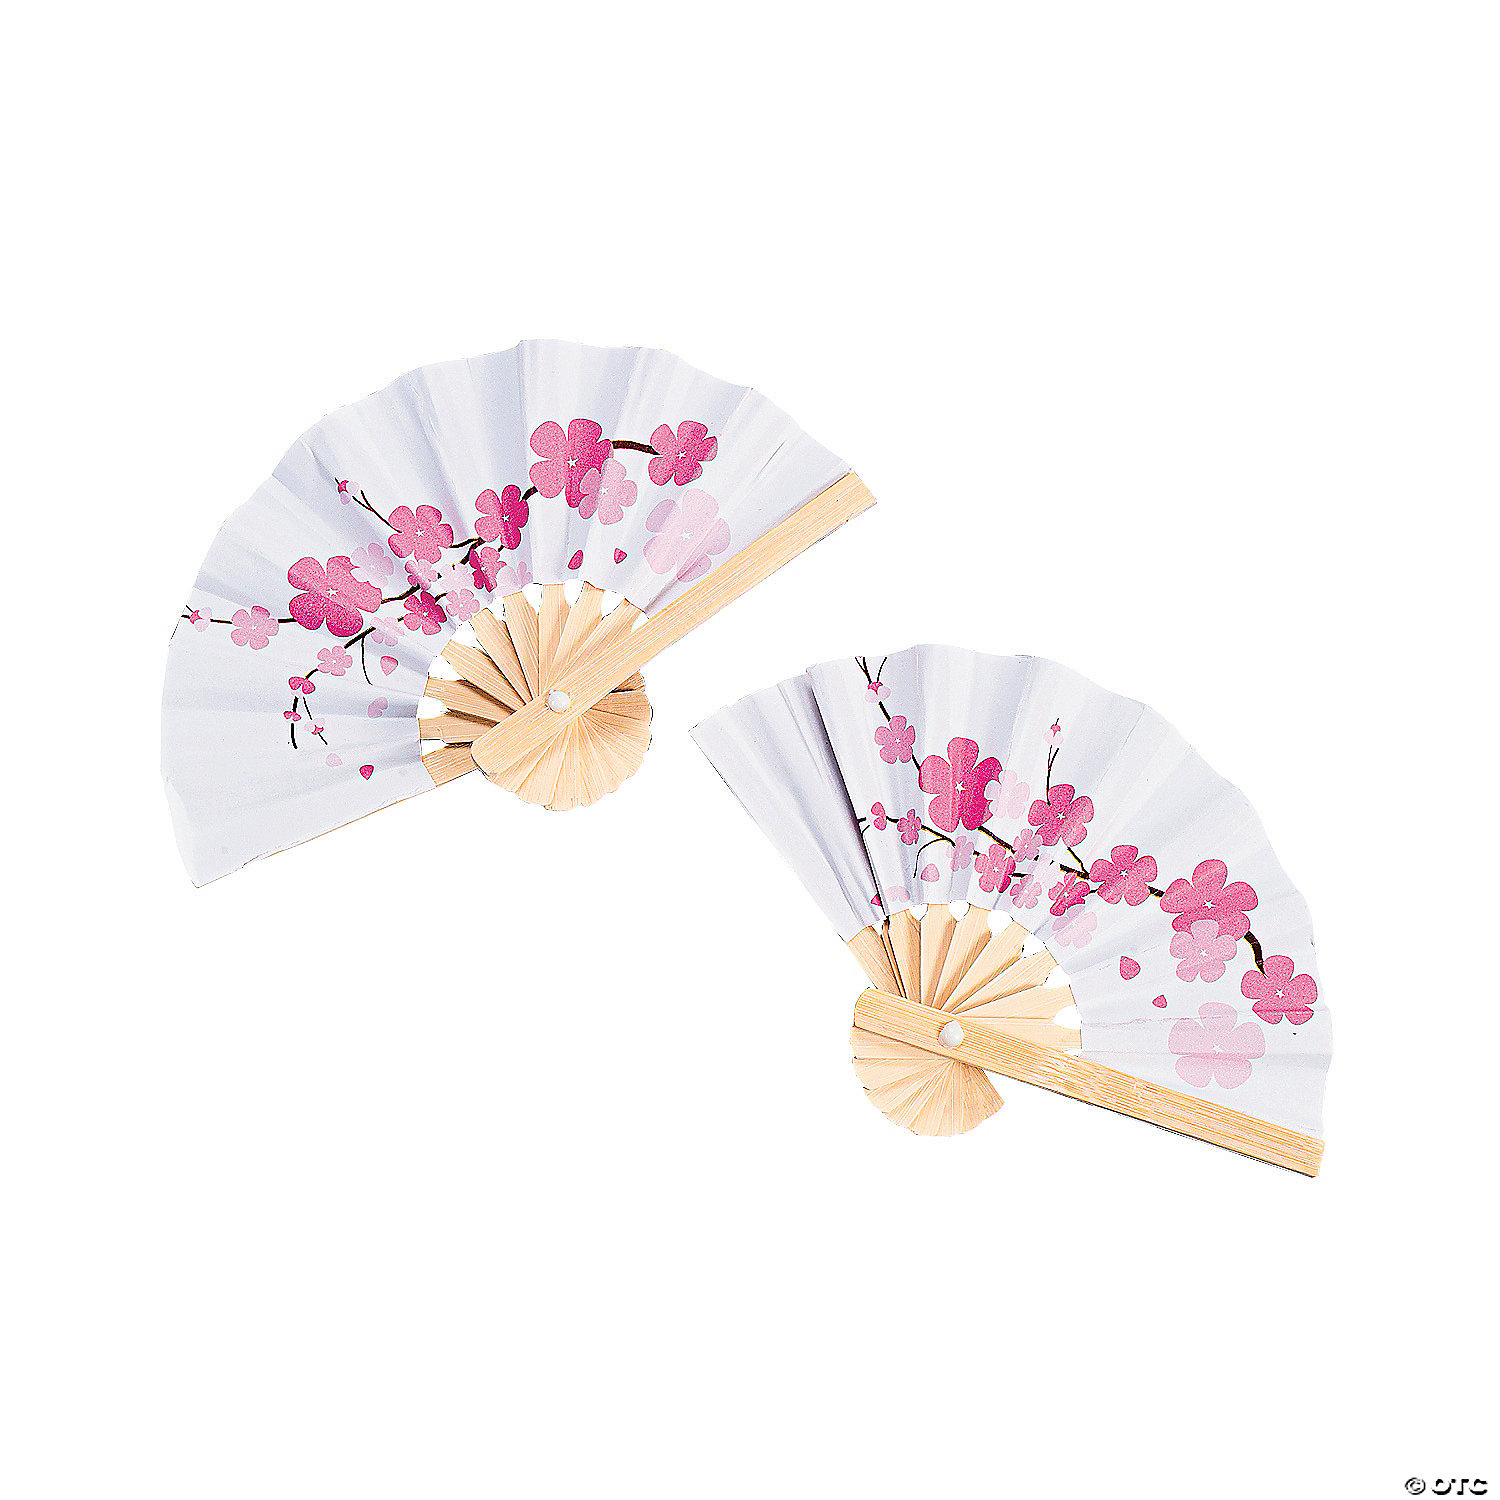 Mini Cherry Blossom Folding Hand Fans